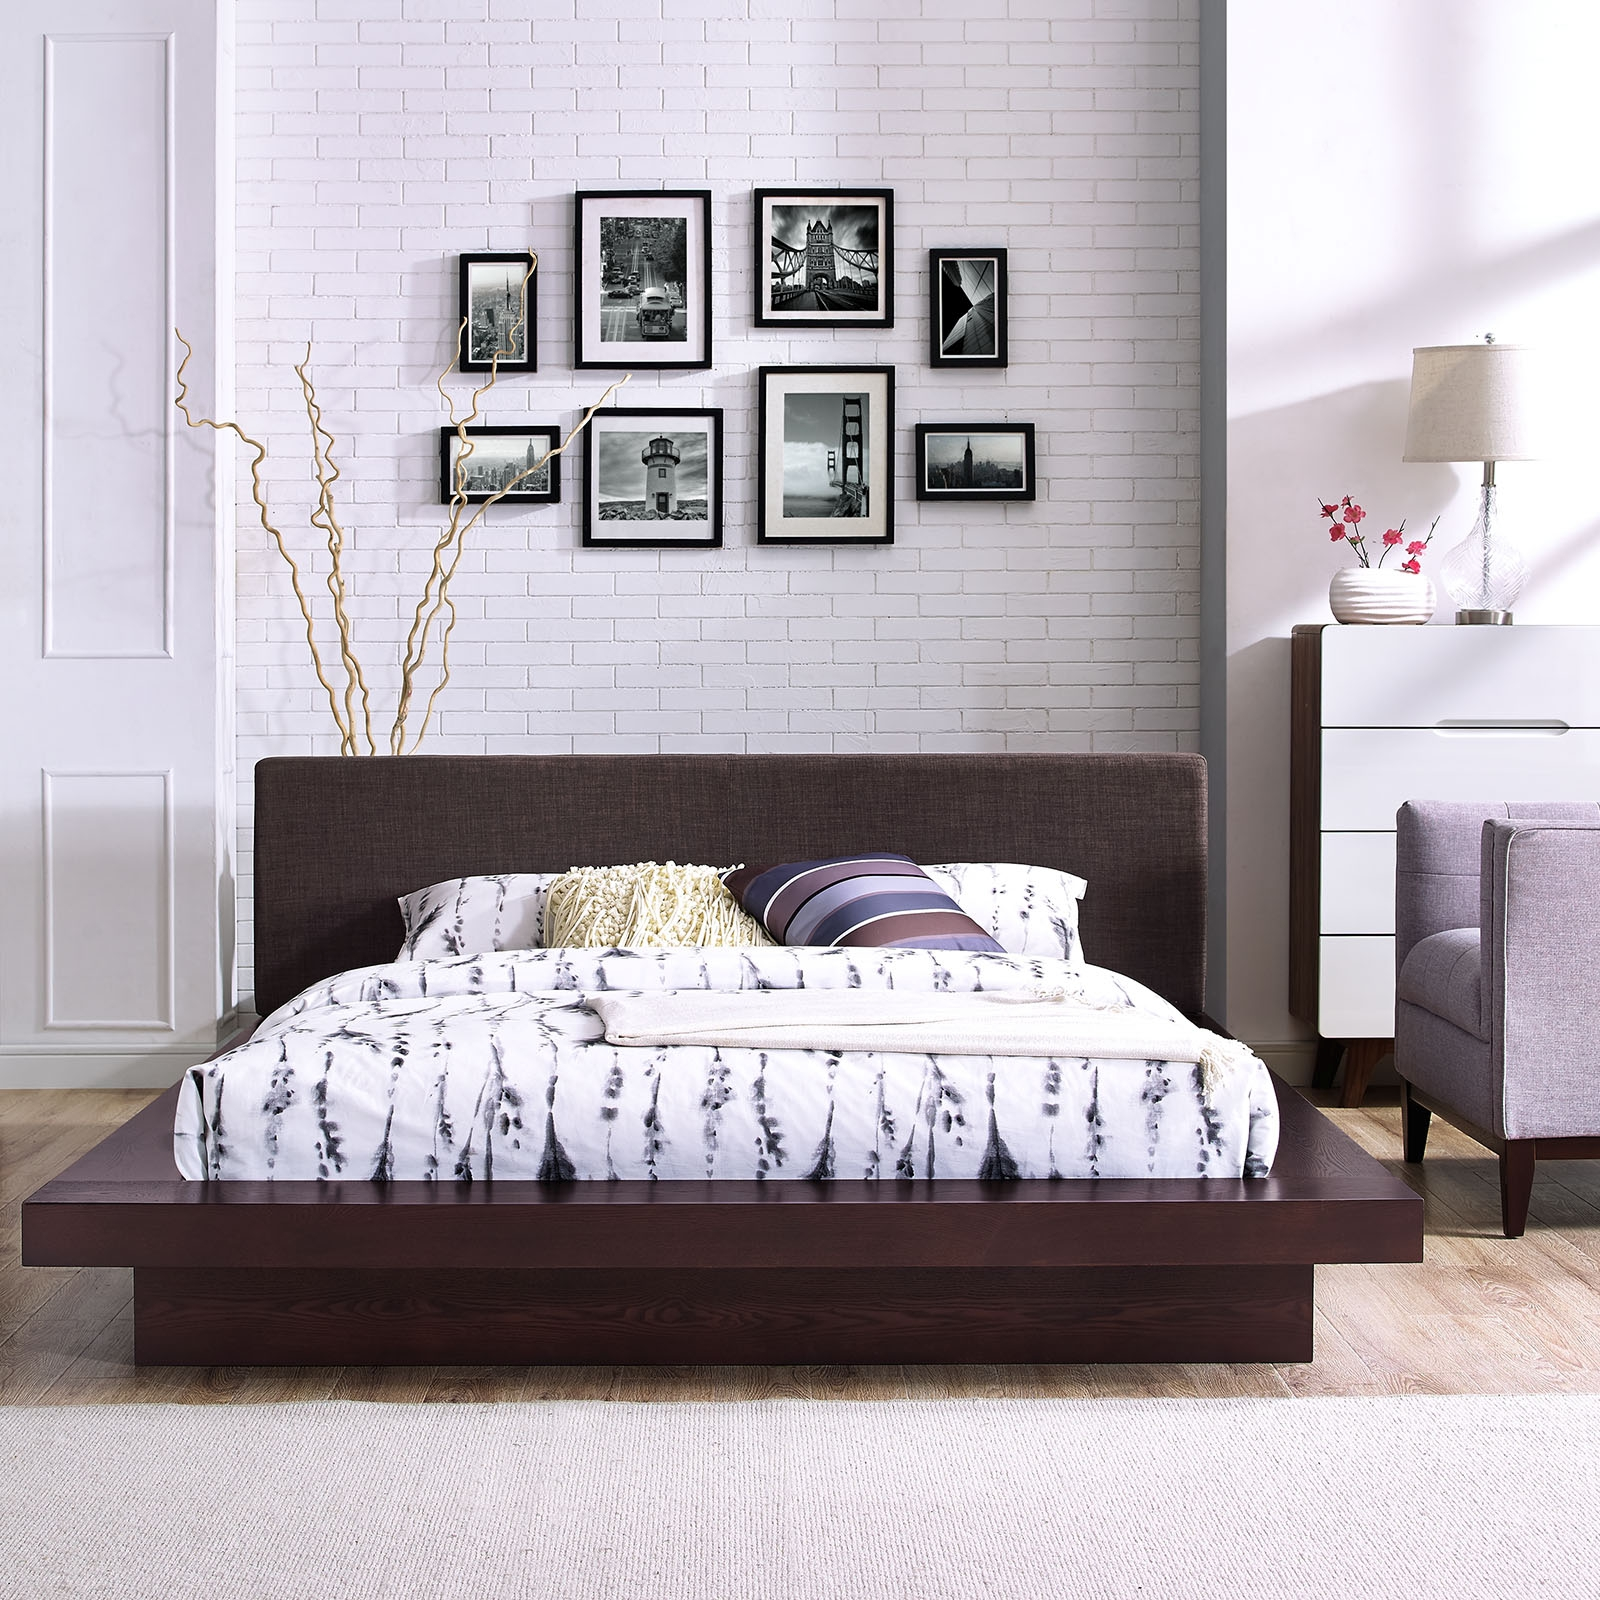 Modway 5721 Cappuccino Queen Platform Bed W Brown Fabric Headboard